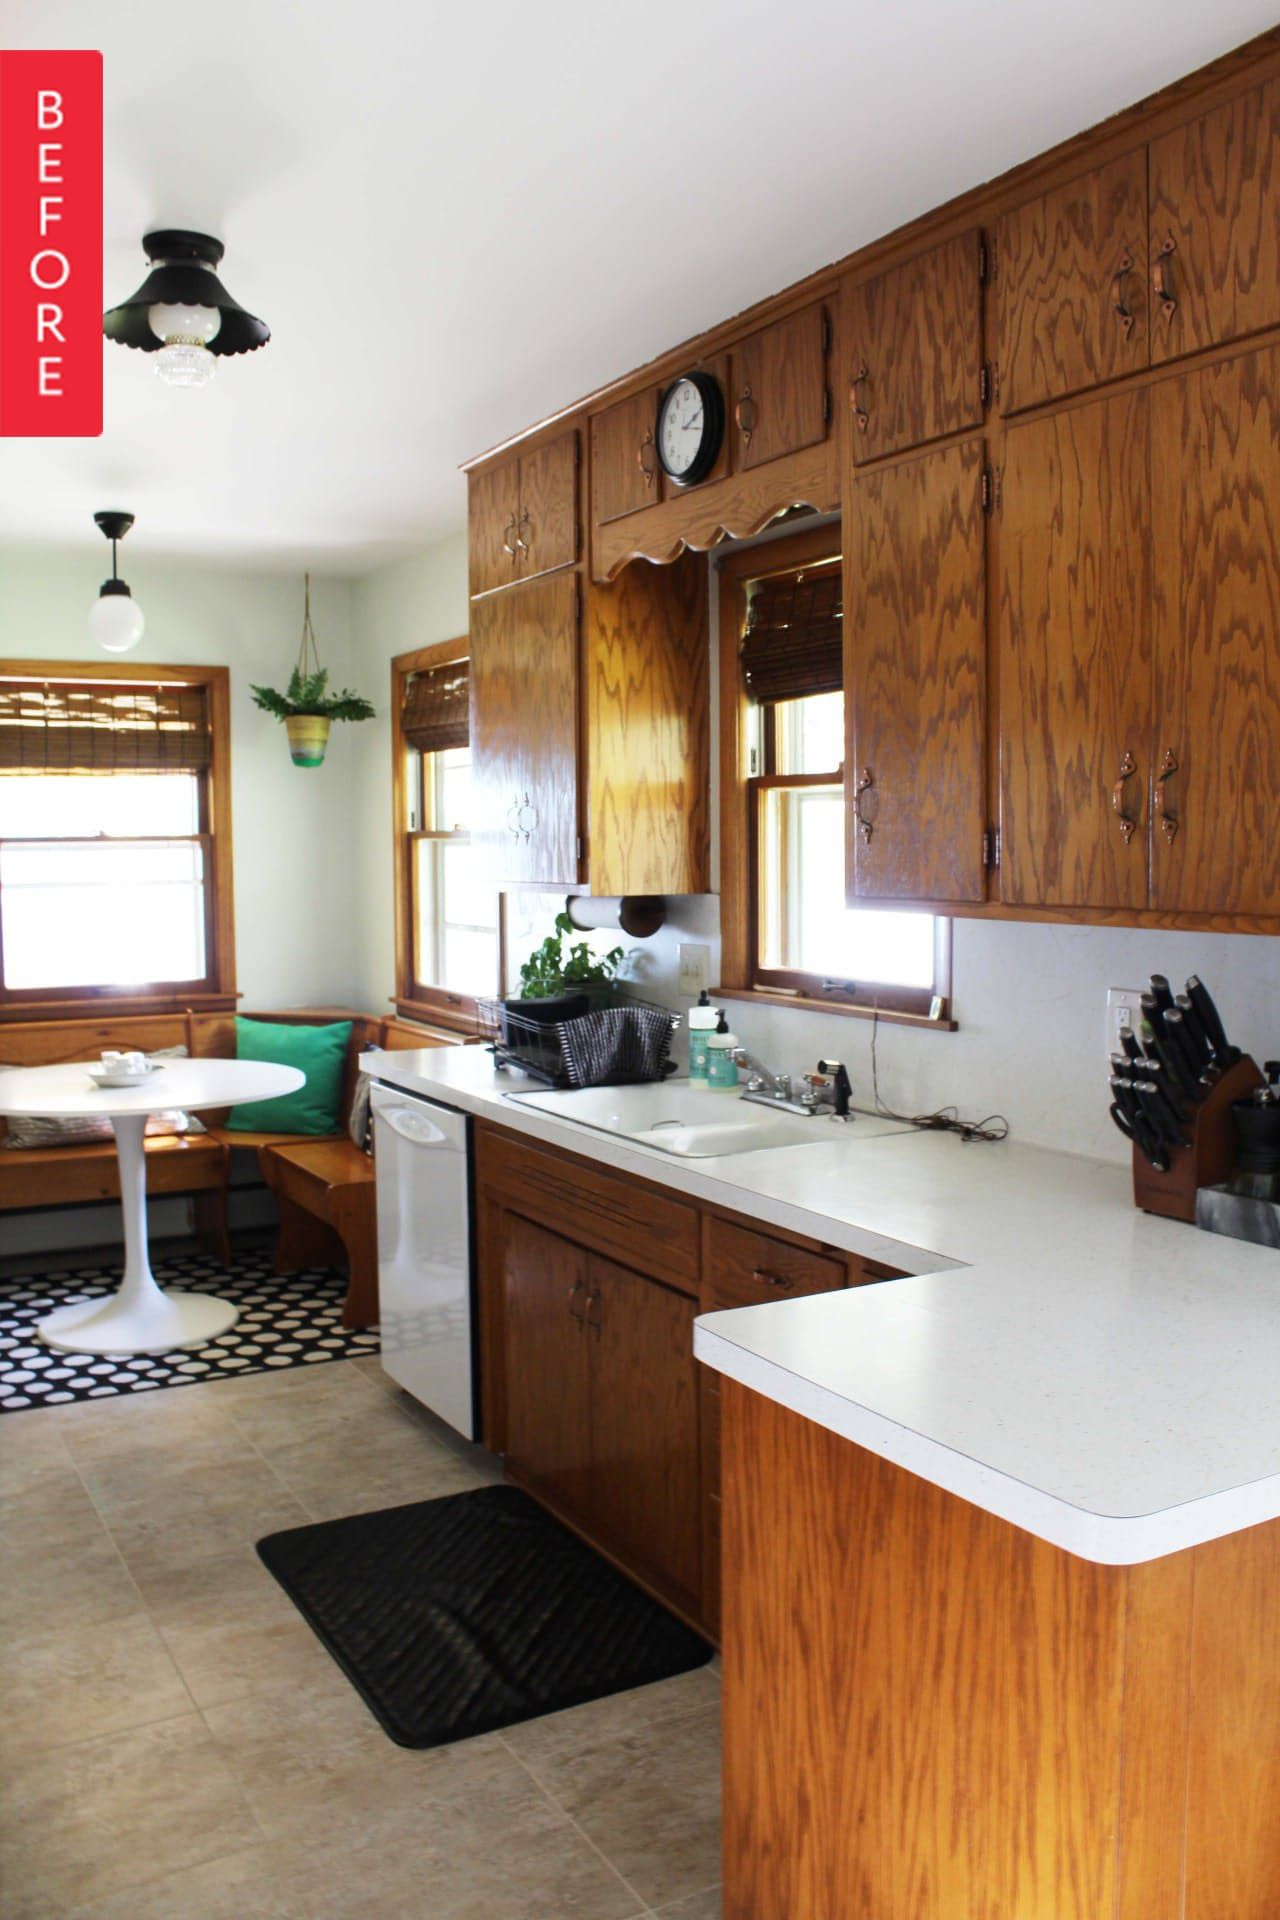 1960s Kitchen Remodel Before After: Before & After: A 1960s Kitchen Opens Up For Under $200